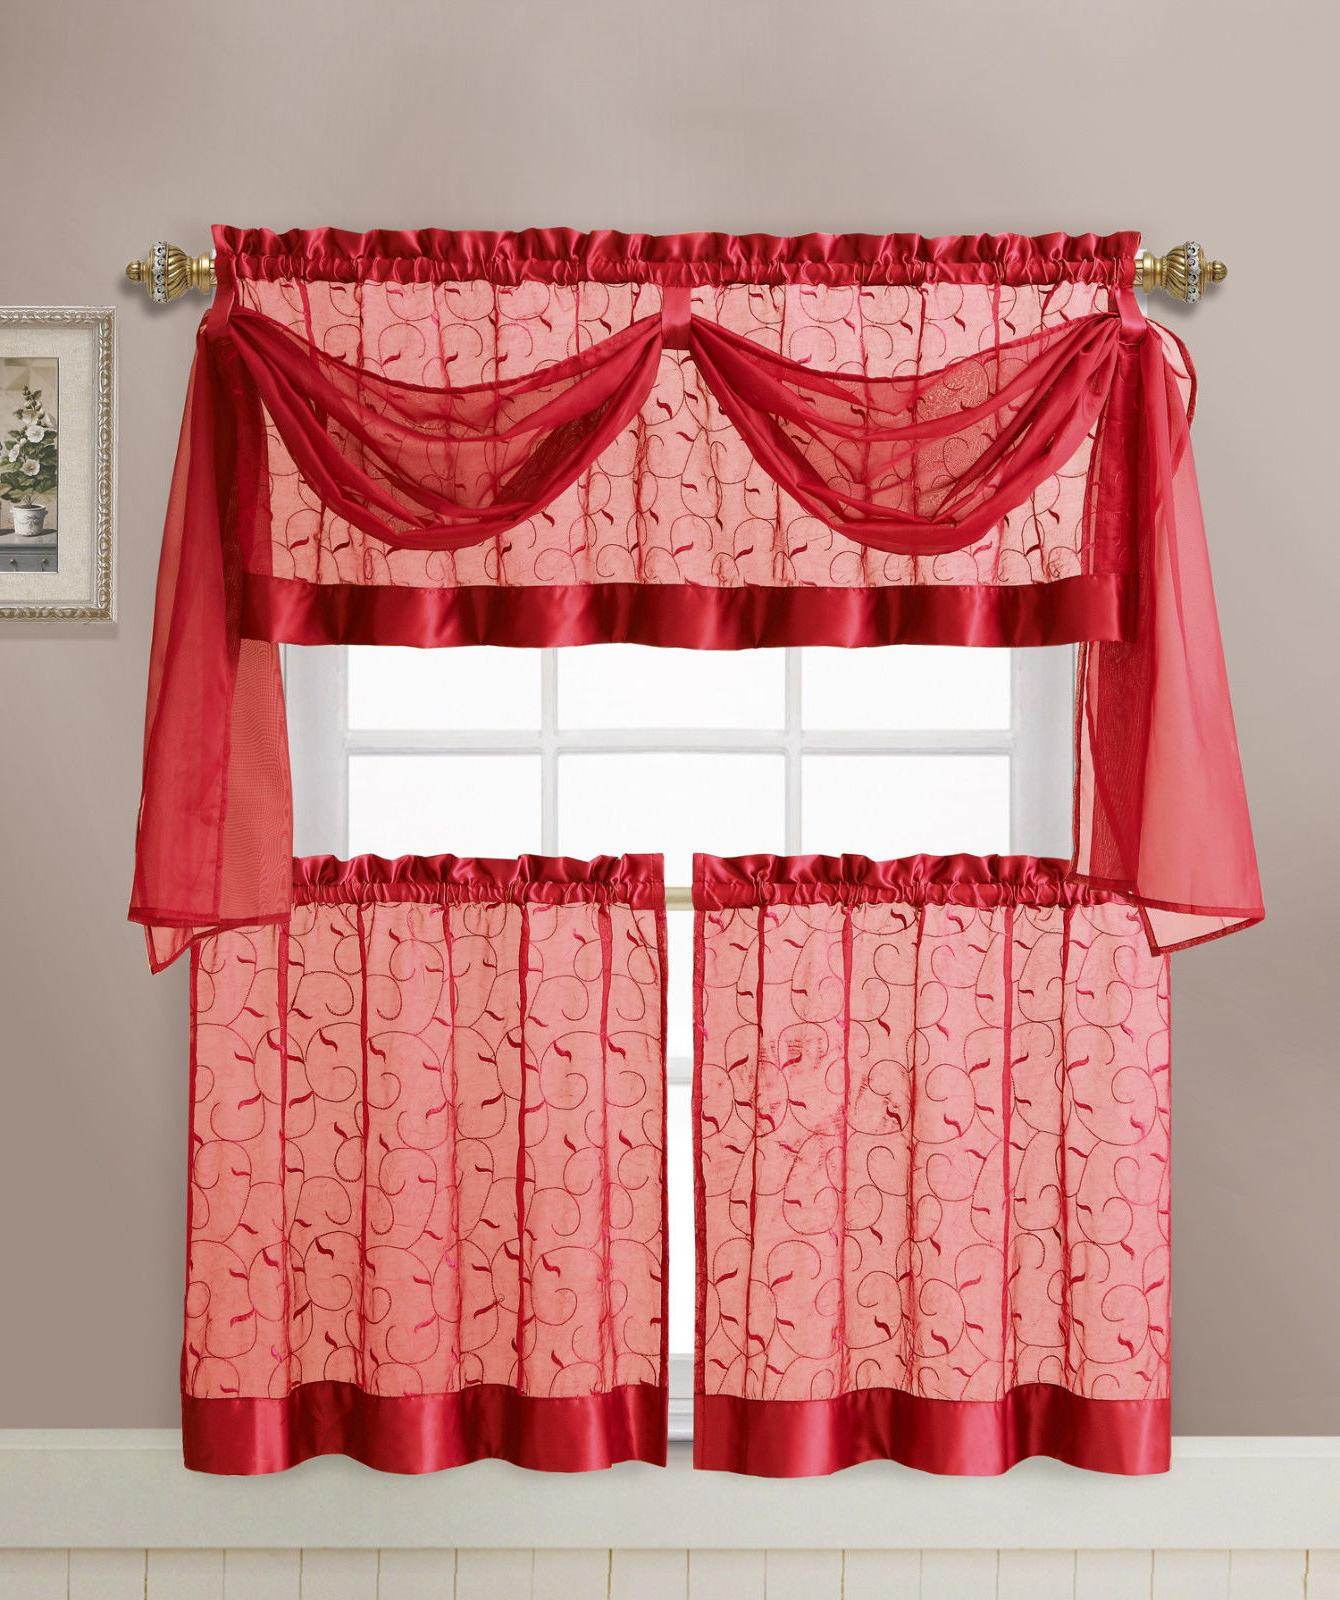 VCNY Embroidered Curtain Set - Assorted